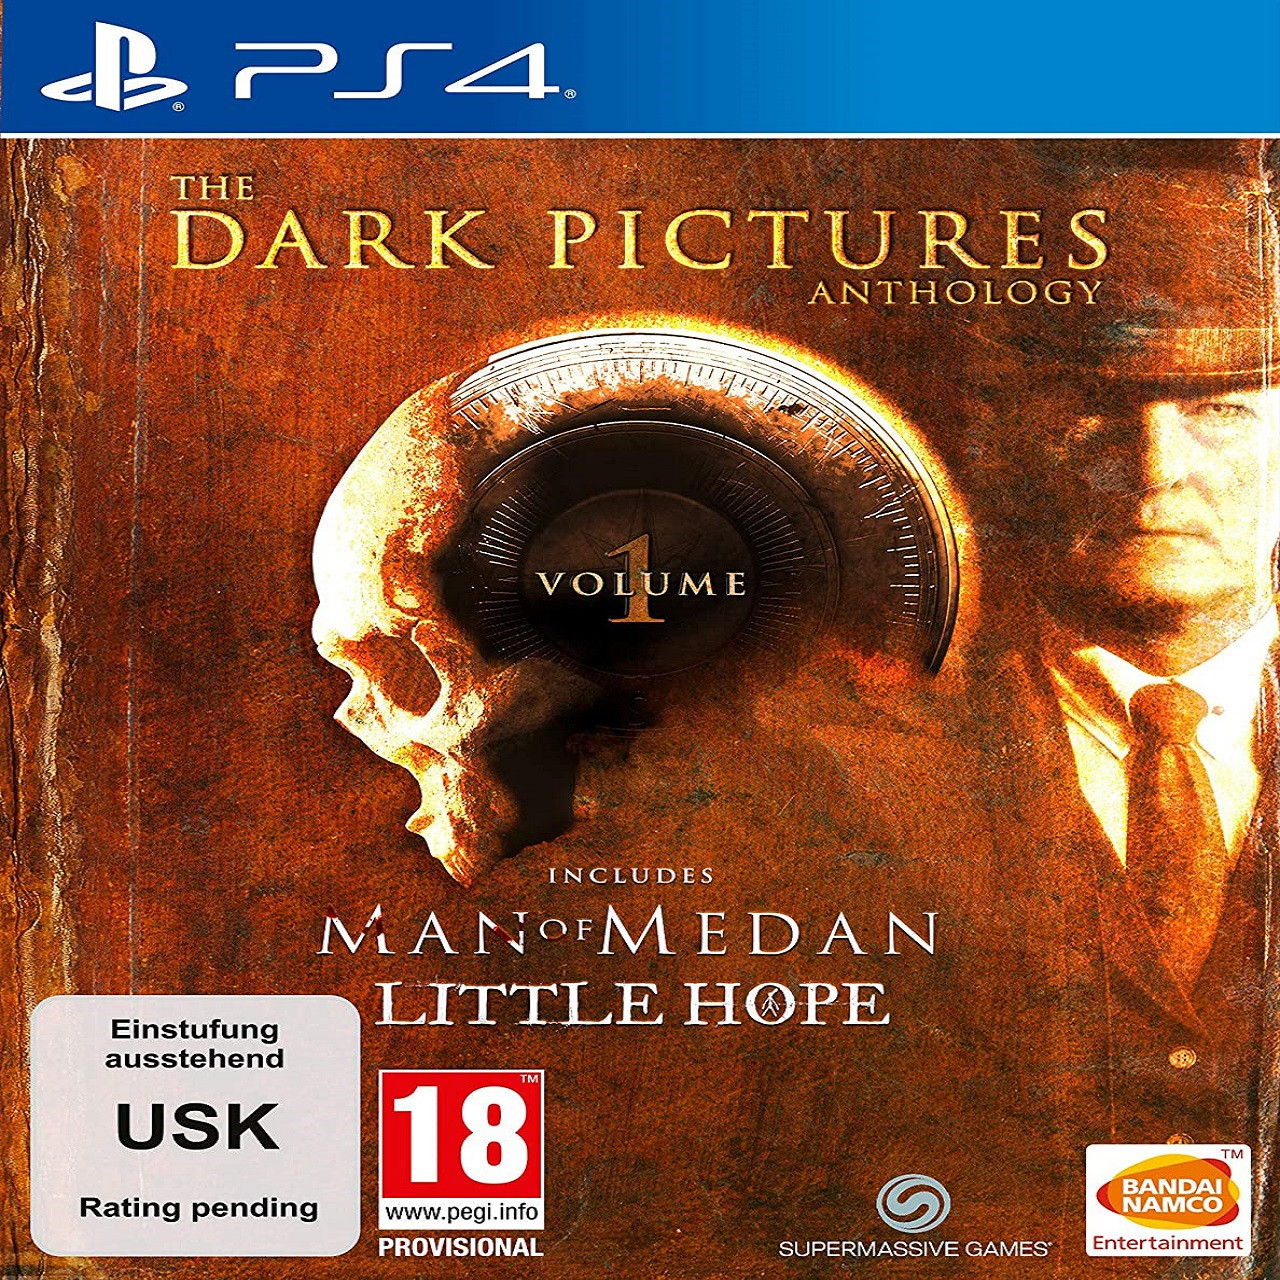 The Dark Pictures Anthology: Little Hope and Man of Medan VOL.1 Limited Edition (російські субтитри) PS4